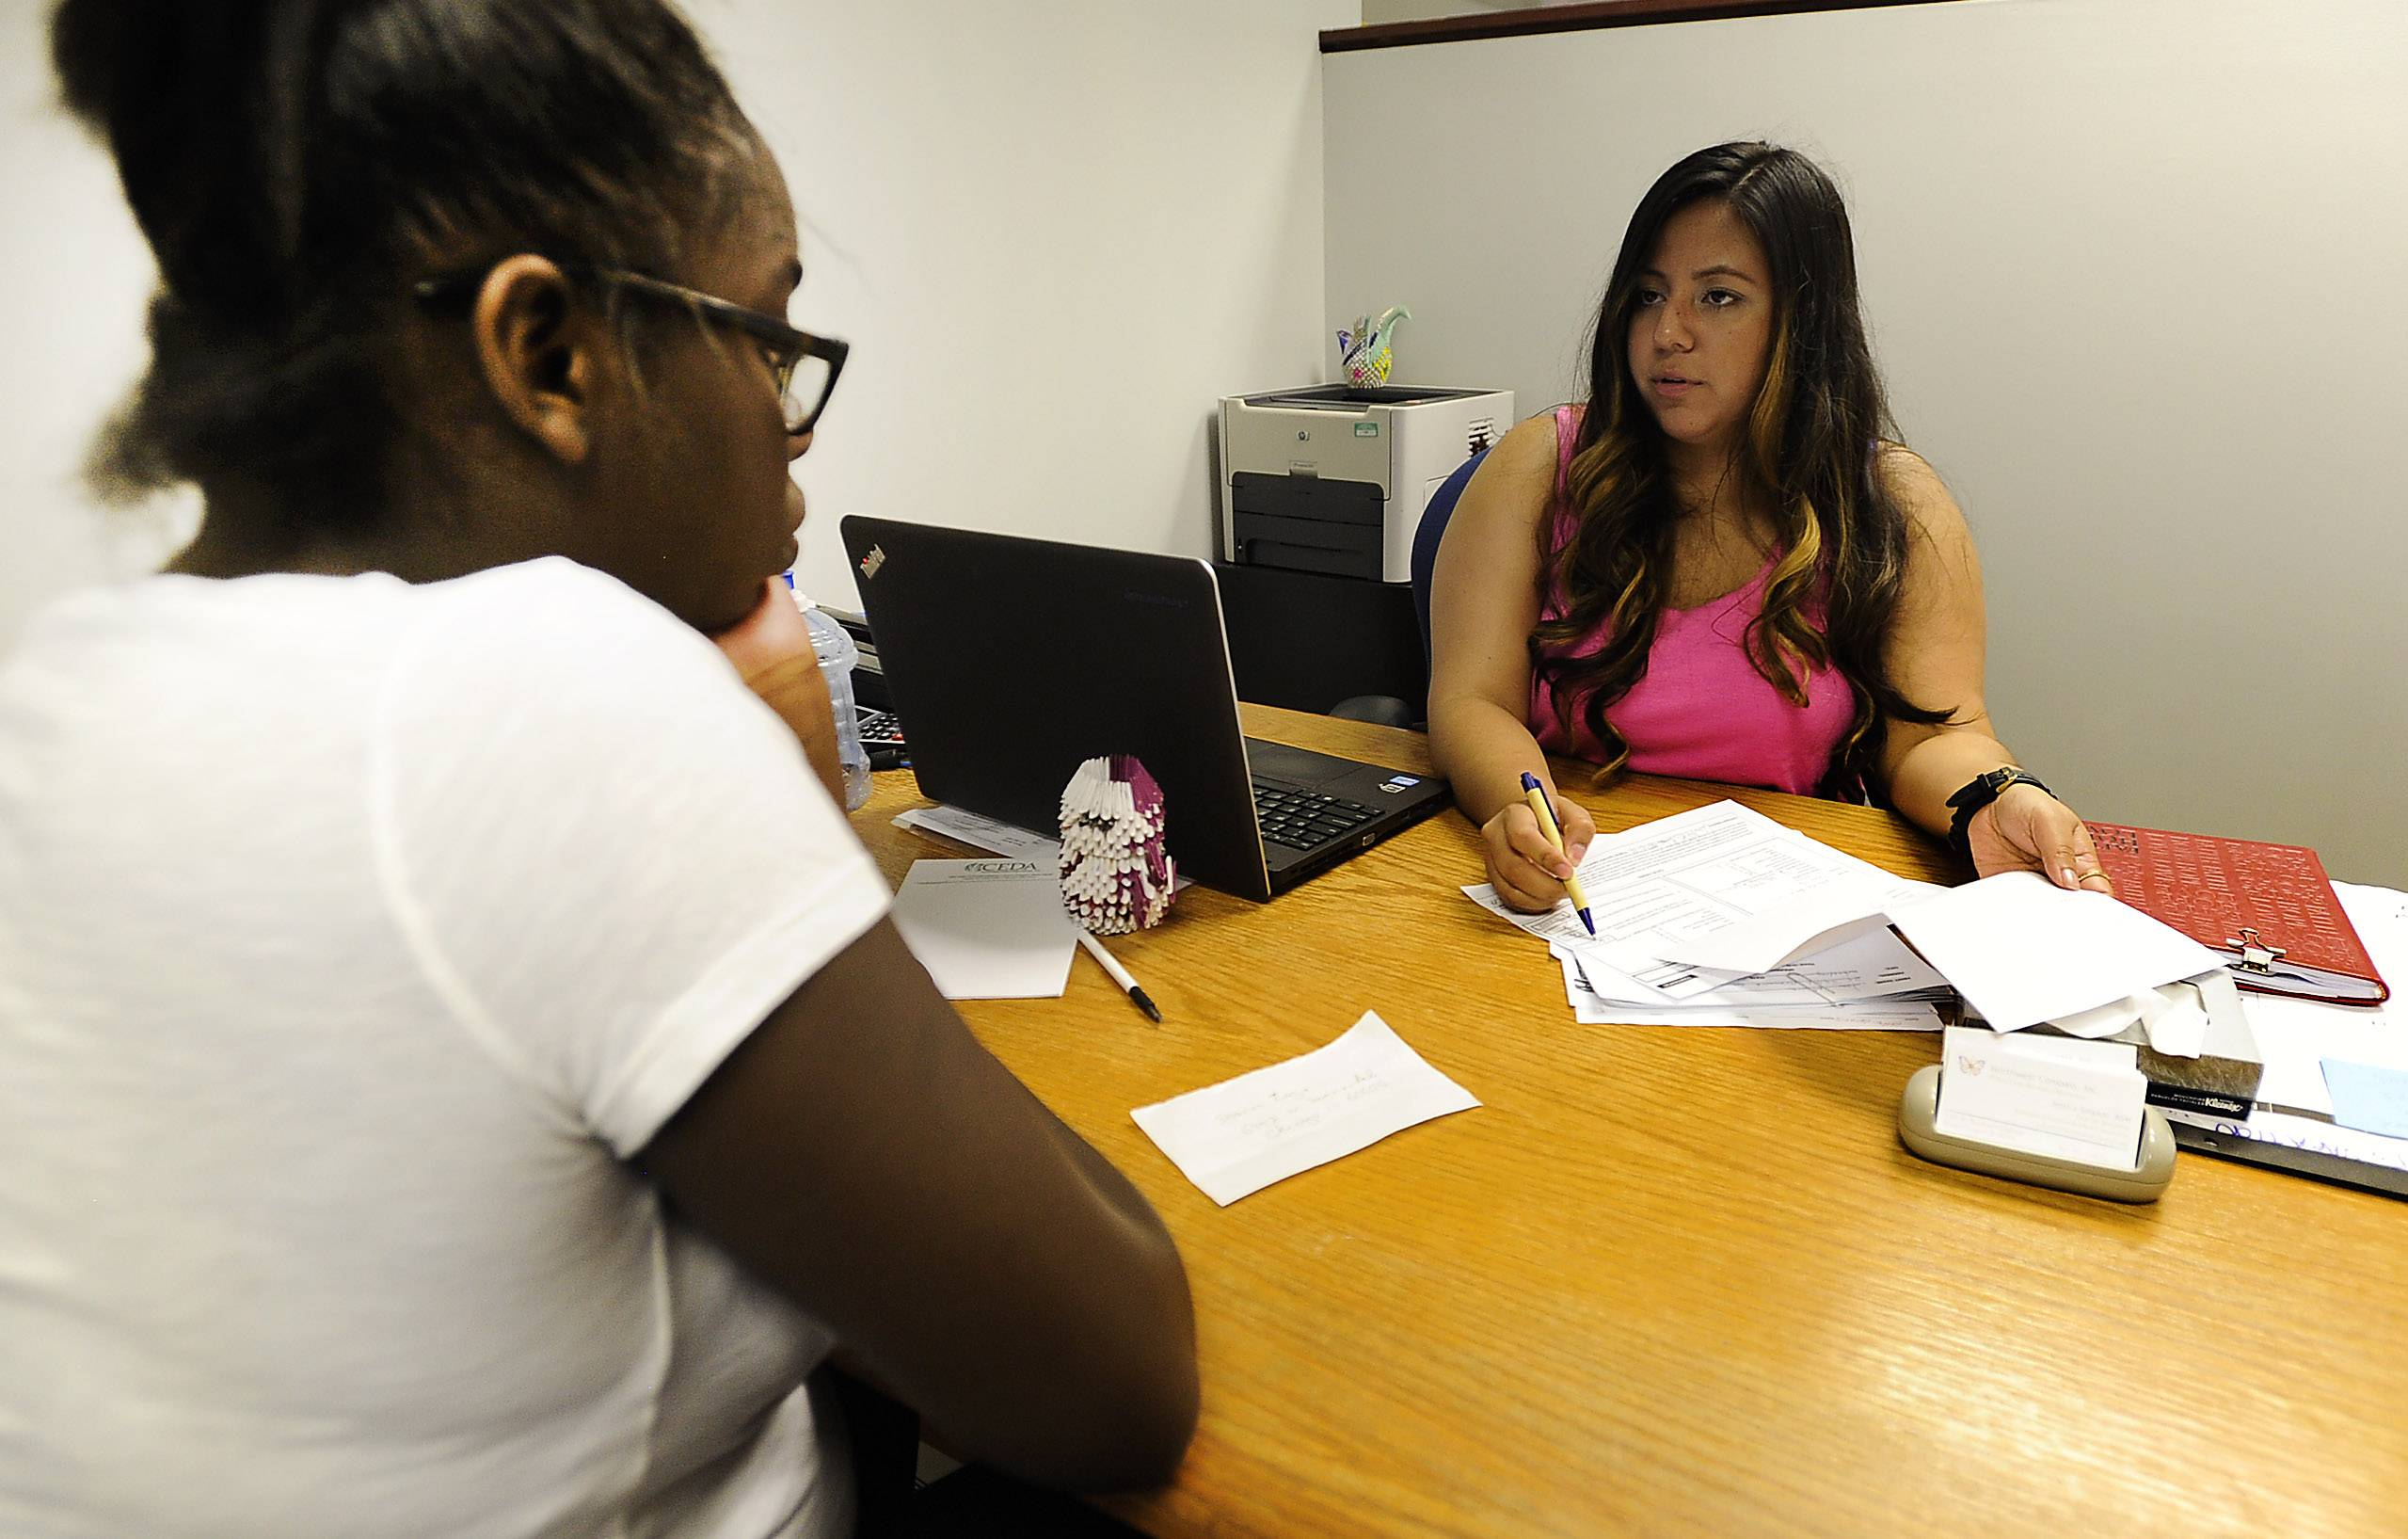 Jessica Salgado, a hardship intervention specialist, speaks with Annette Barner of Schiller Park in her office at Northwest Compass, formally CEDA Northwest, which focuses on helping people in need.